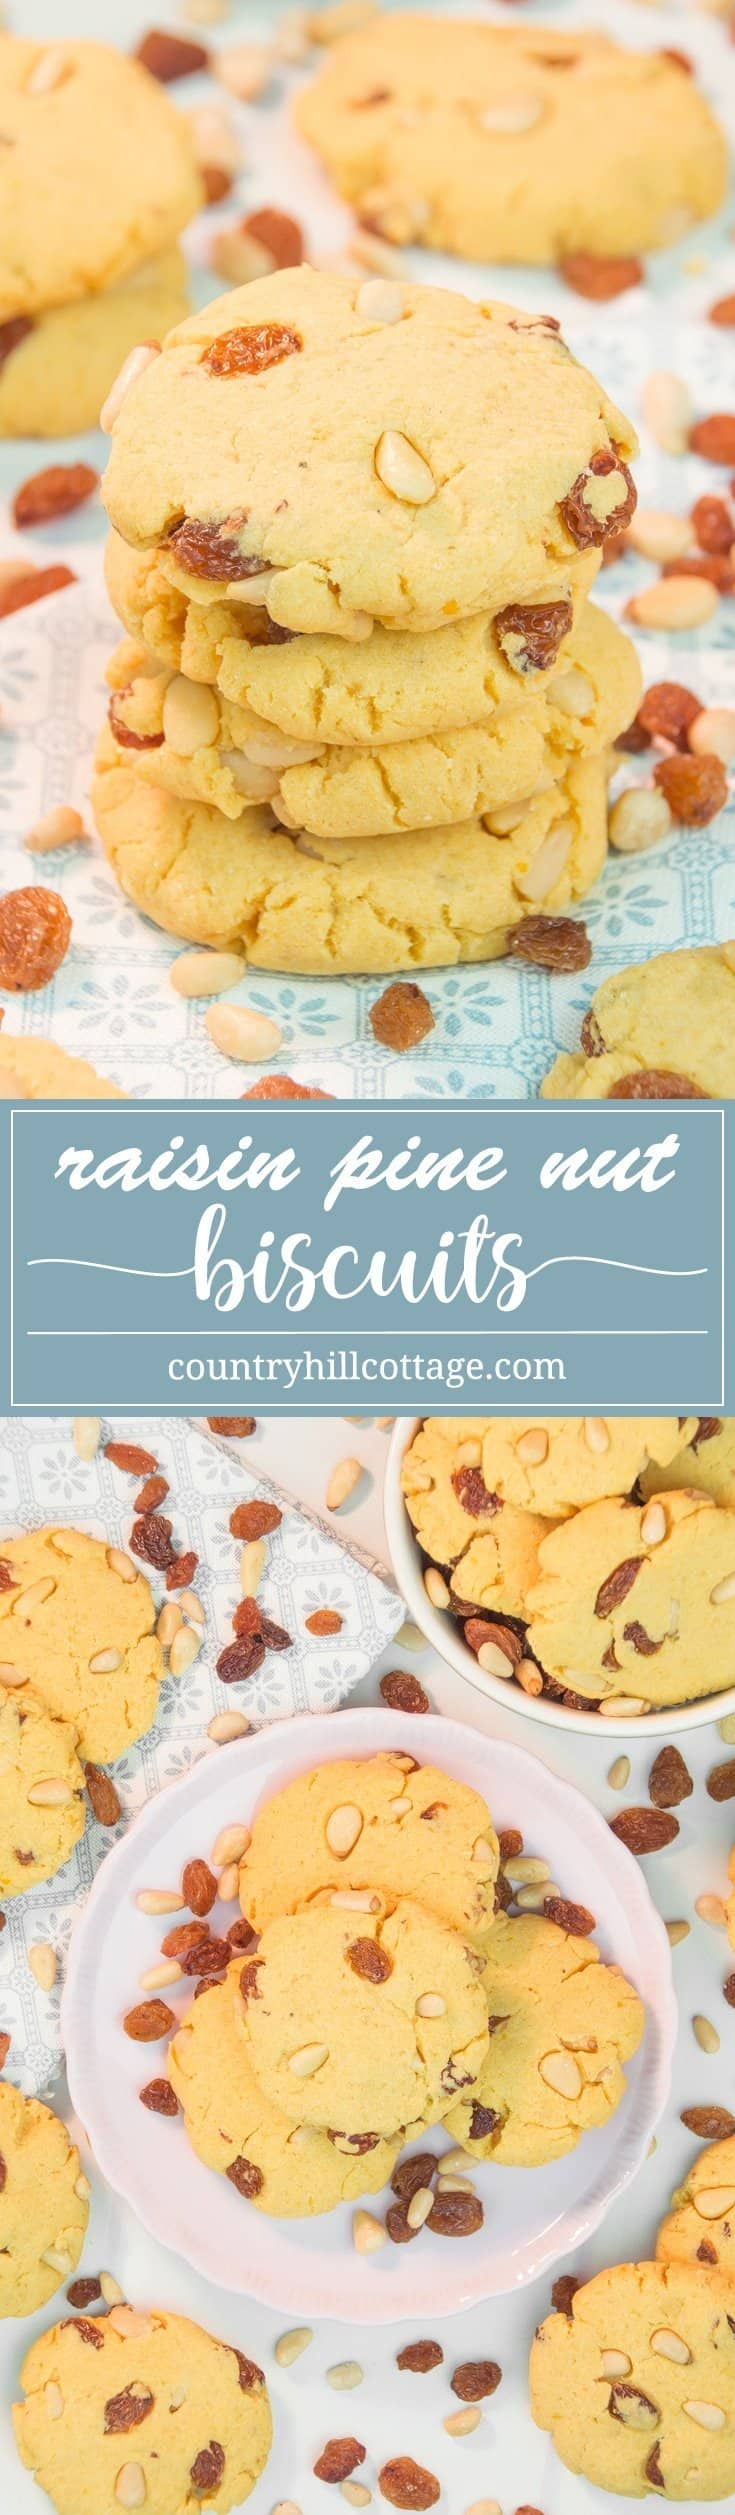 Raisin pine nut biscuits are the perfect accompaniment for tea or after-dinner treat with a glass of dessert wine. These two-bite cookies are made with a flavourful combination of maize flour, raisins, pine nuts, and hints of lemon and vanilla. #cookie #biscuit #cornflour #bakingrecipe #foodgift | countryhillcottage.com